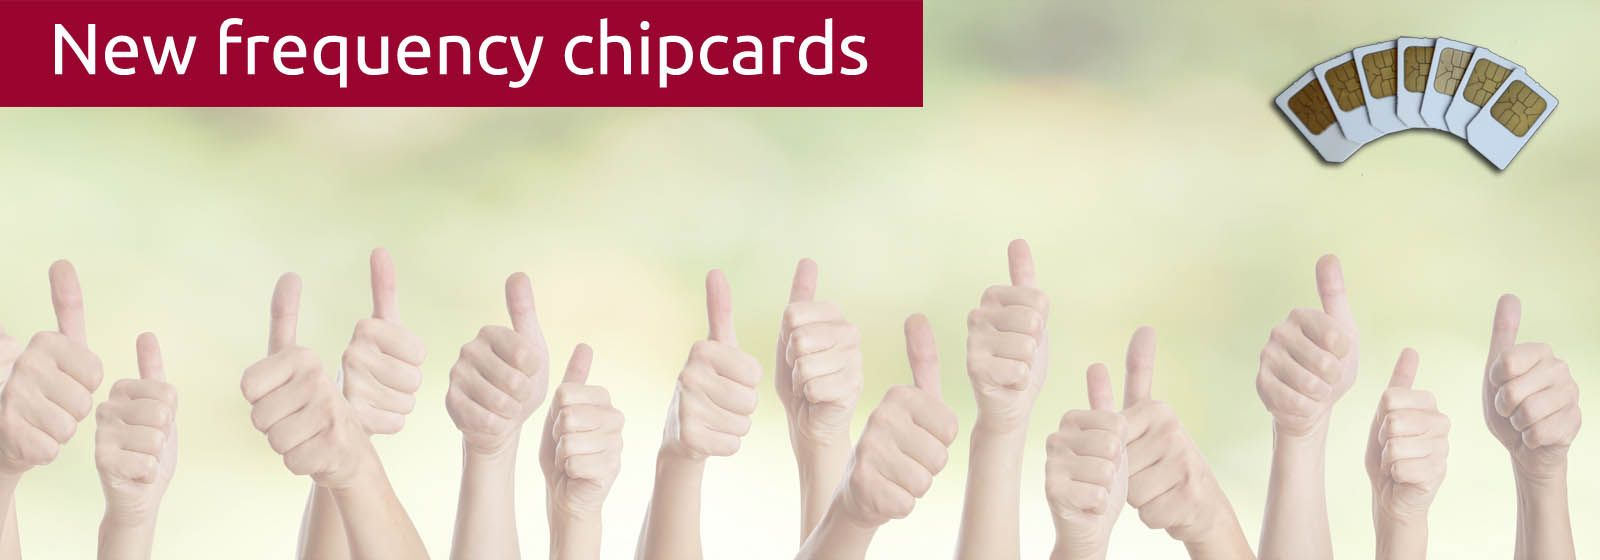 Thumbs high stand for the success of the new frequency chipcards for zappers Biowave and Diamond Shield